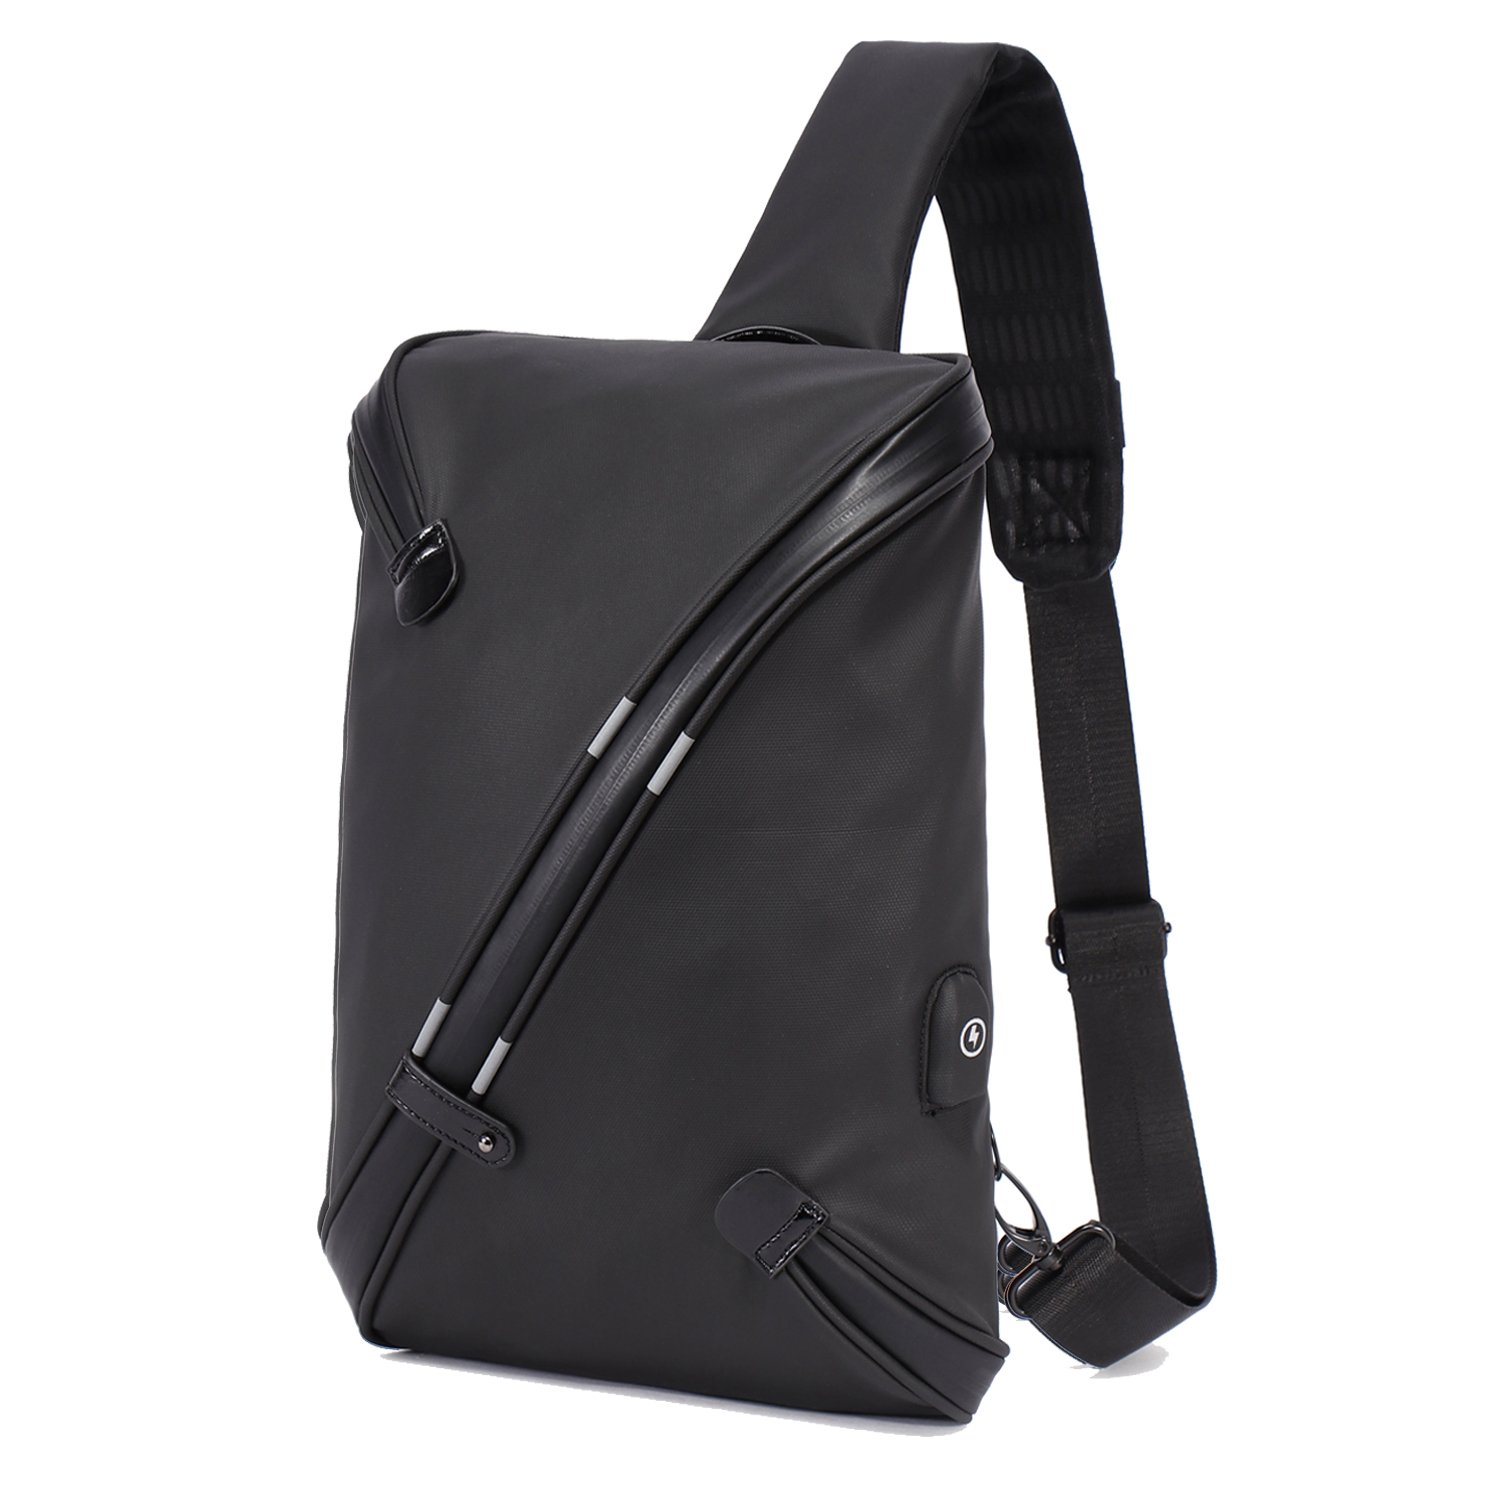 BeckySling Chest Shoulder Backpack,Travel Fashion Crossbody Bag Multipurpose Casual Daypacks for Men&Women,Hiking Triangle Rucksack with USB Charging Port-Black by BECKY (Image #1)